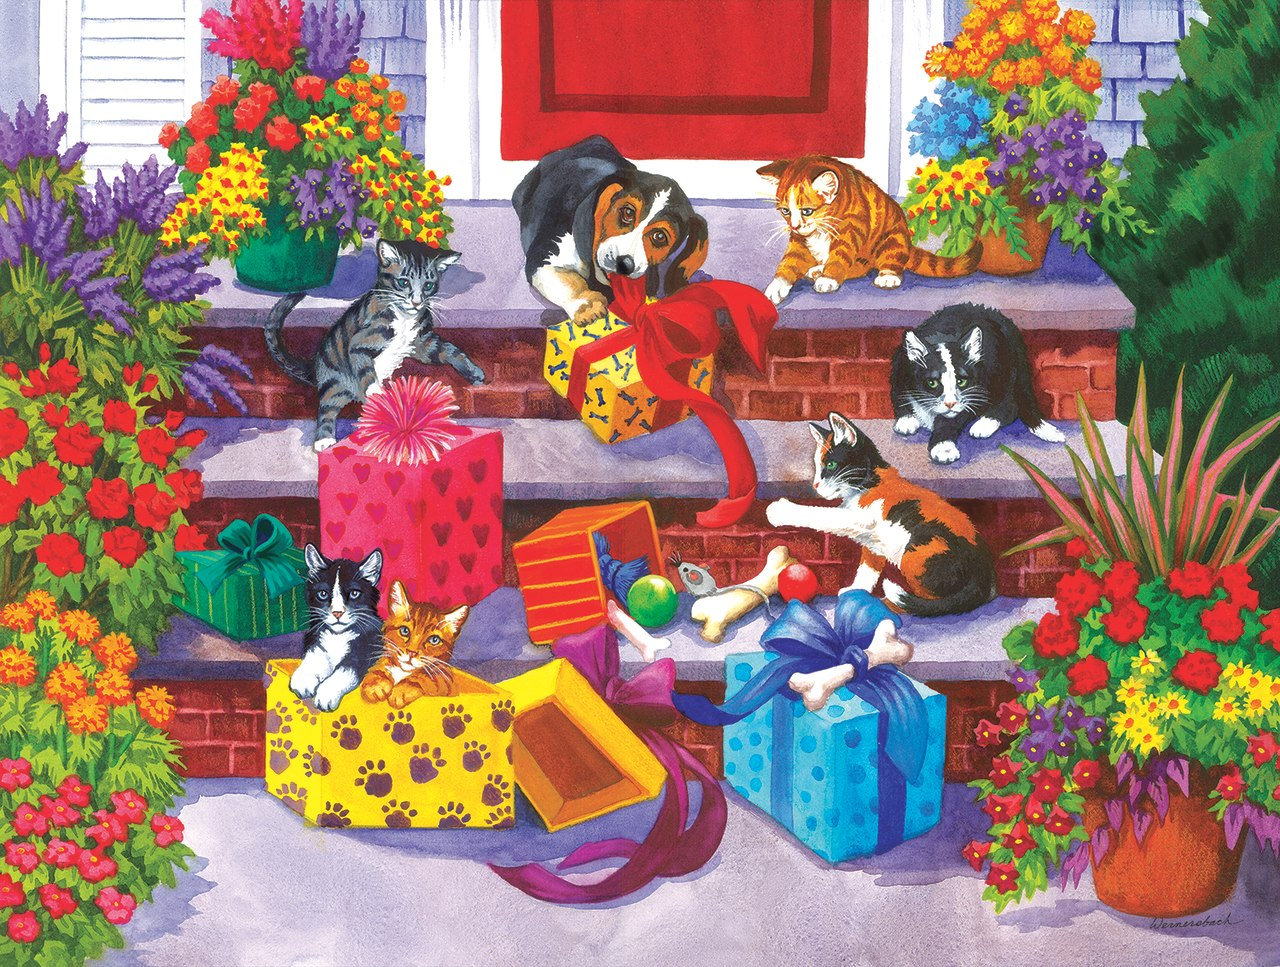 Time for Toys and Treats - 1000pc Jigsaw Puzzle by Sunsout  			  					NEW